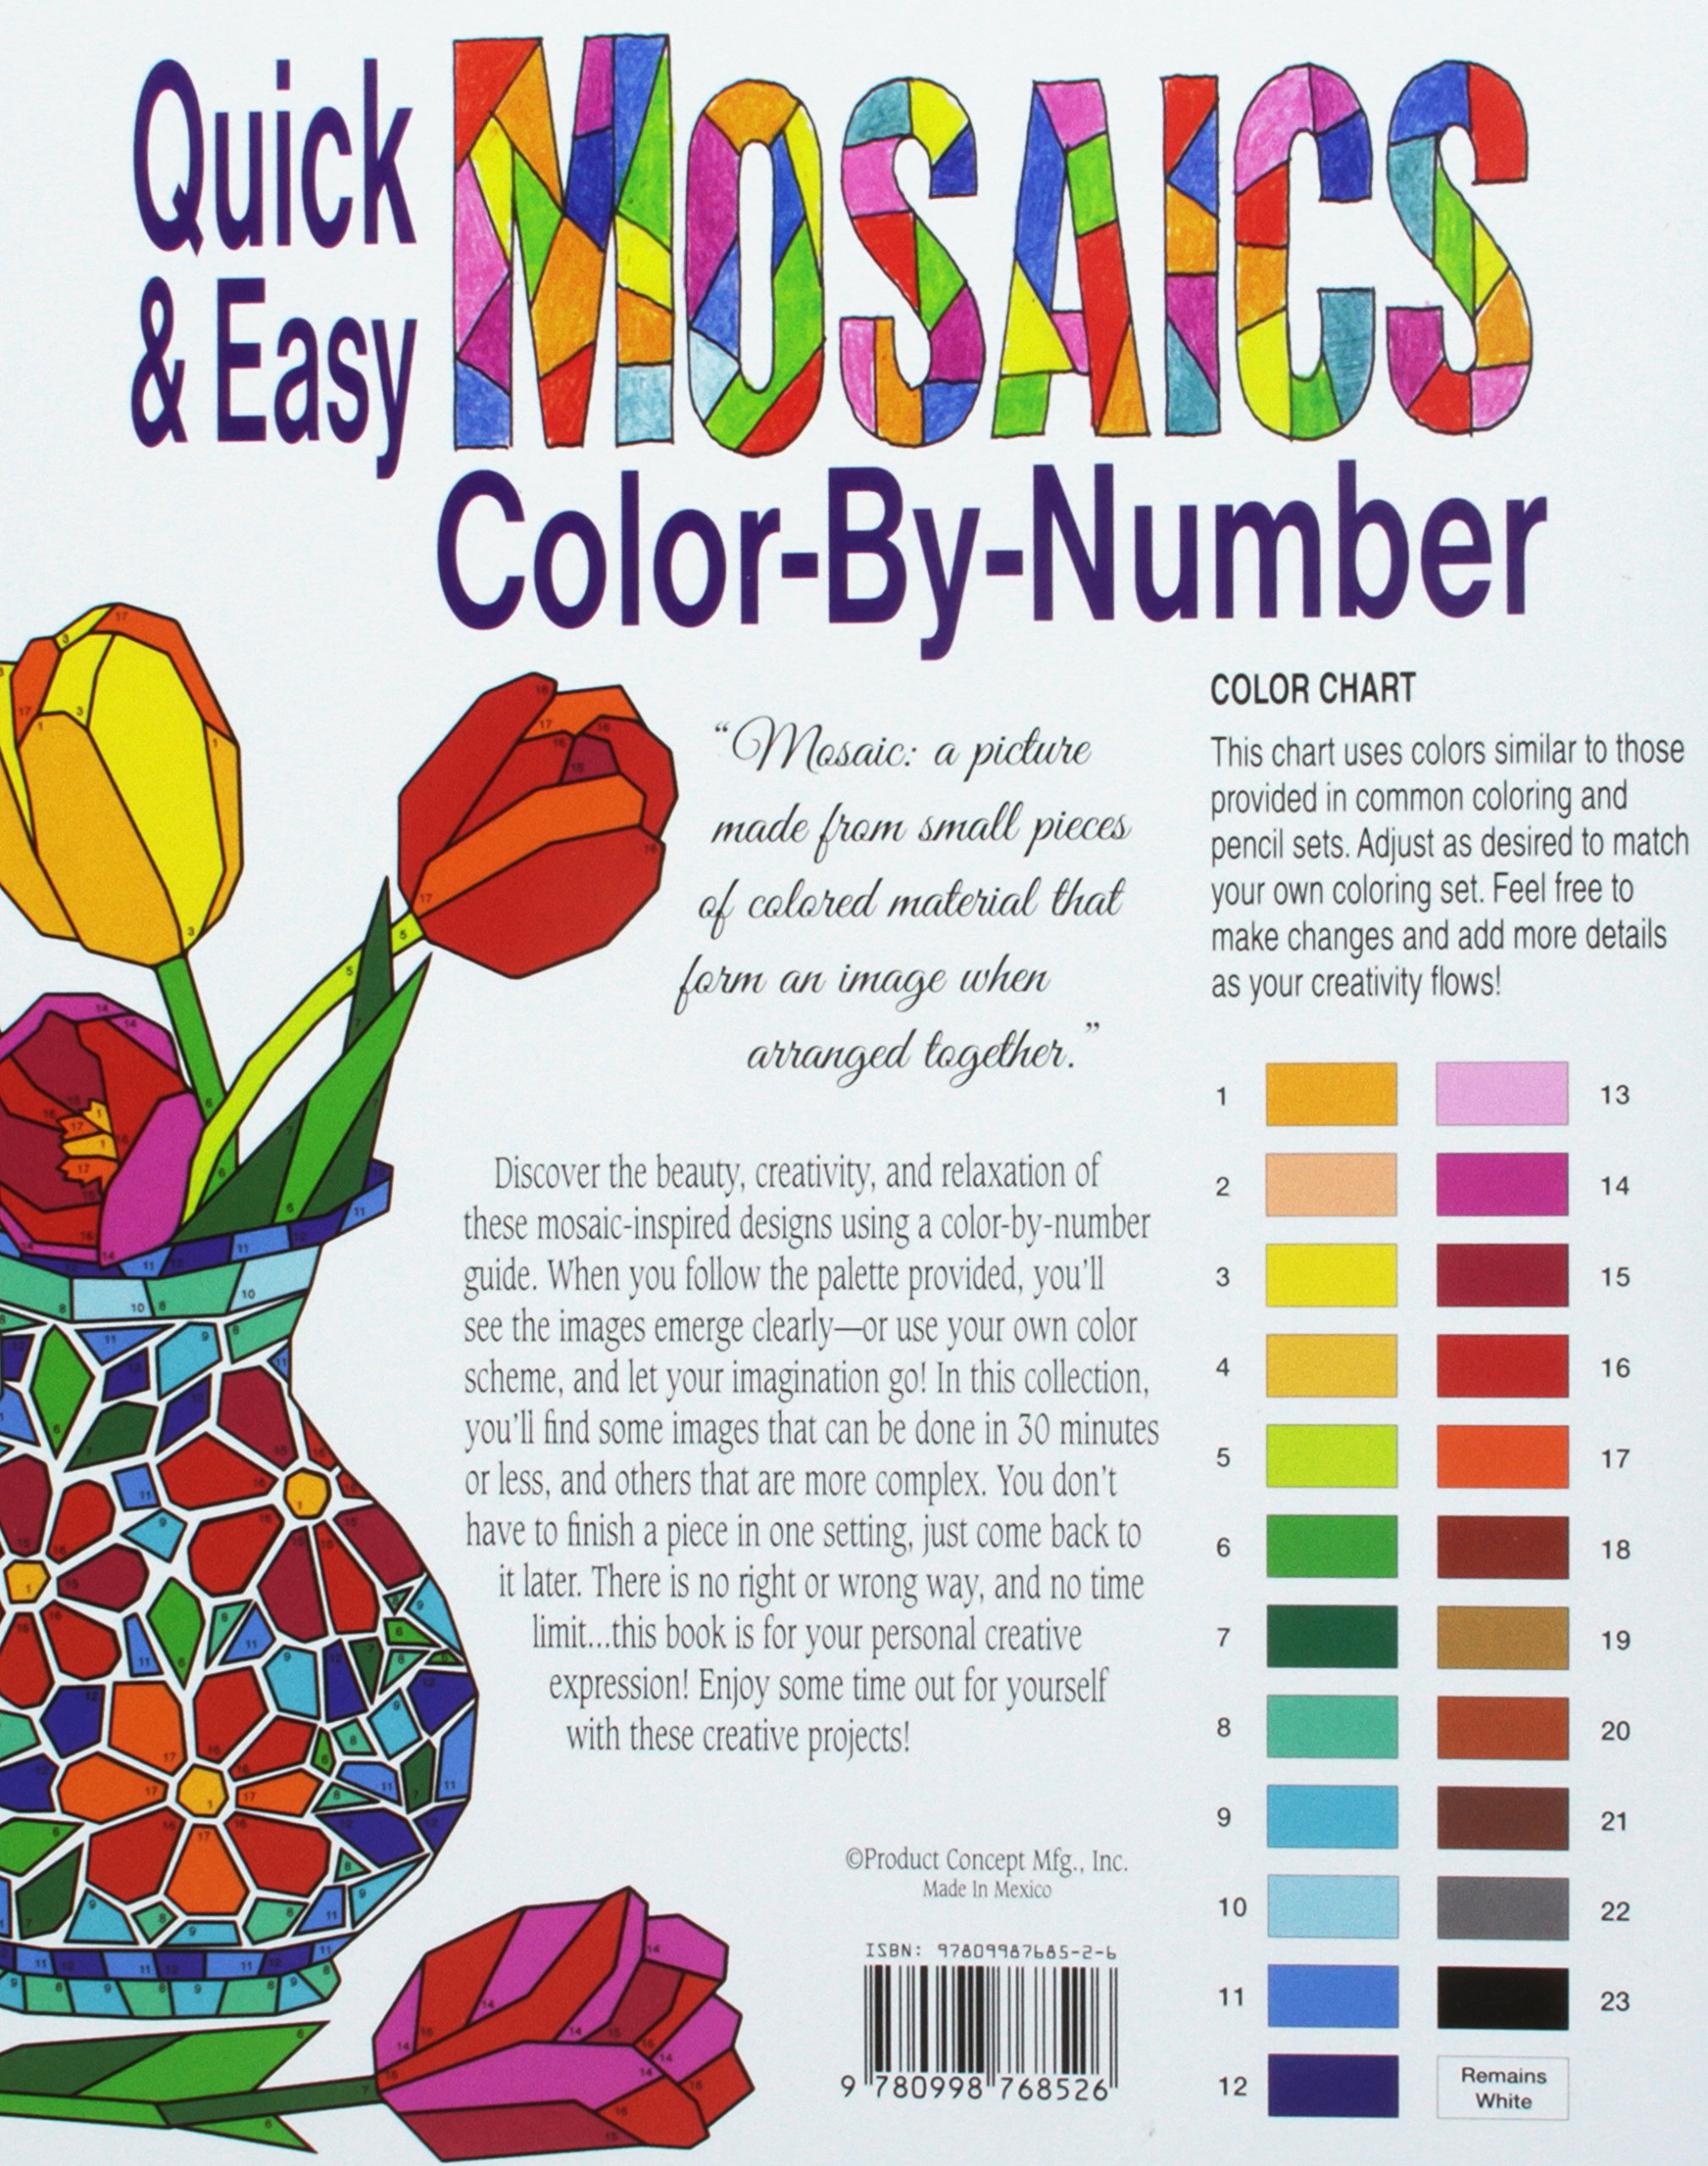 Amazon.com: Quick & Easy Mosaics Color-by-Number (9780998768526 ...